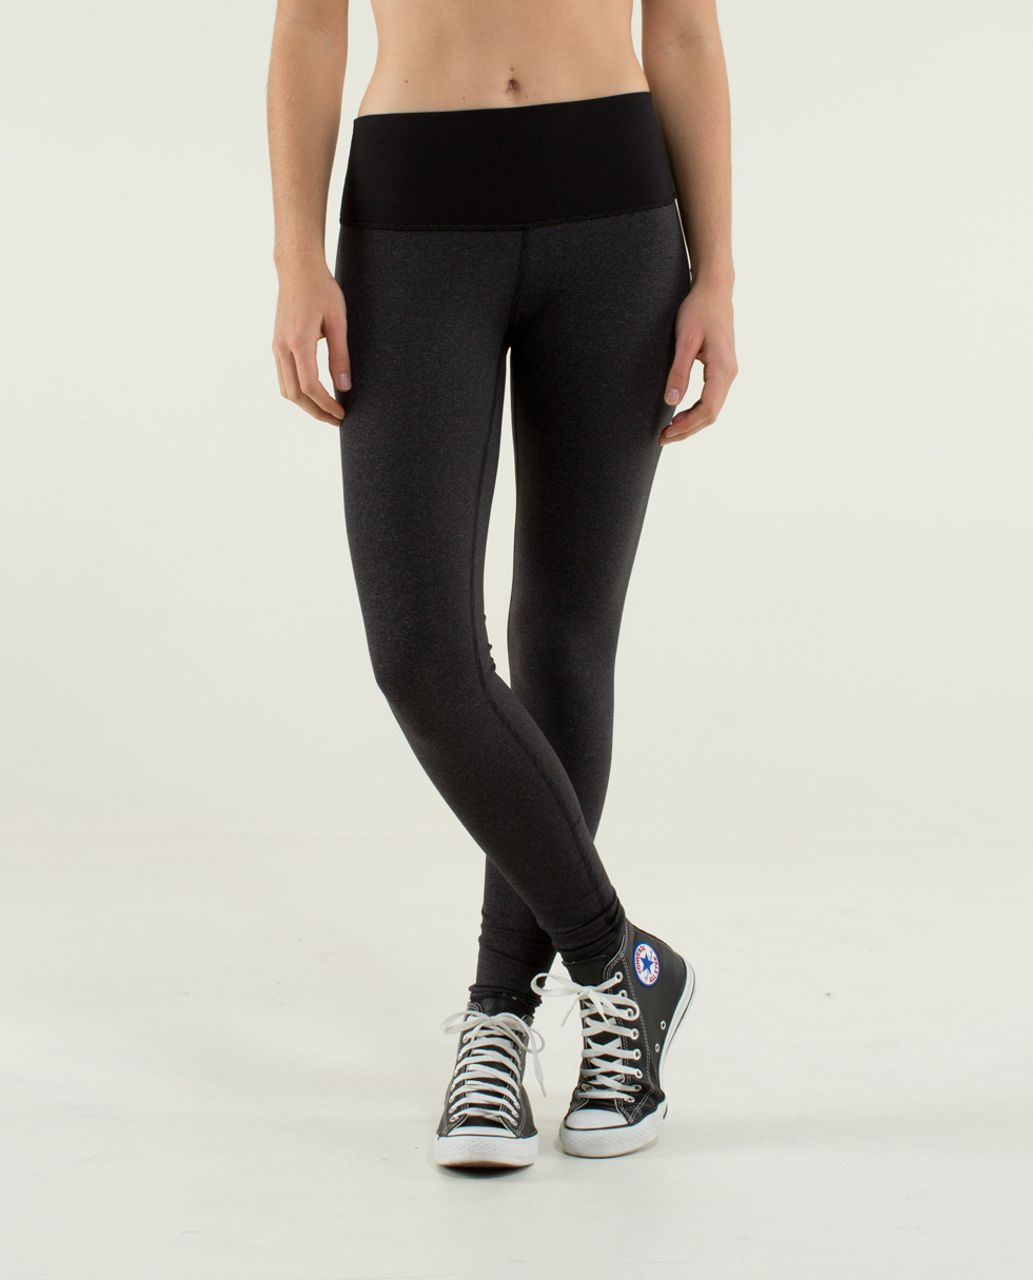 f364527aad Lululemon Wunder Under Pant *High/Low - Wee Stripe Black Heathered Black /  Black - lulu fanatics